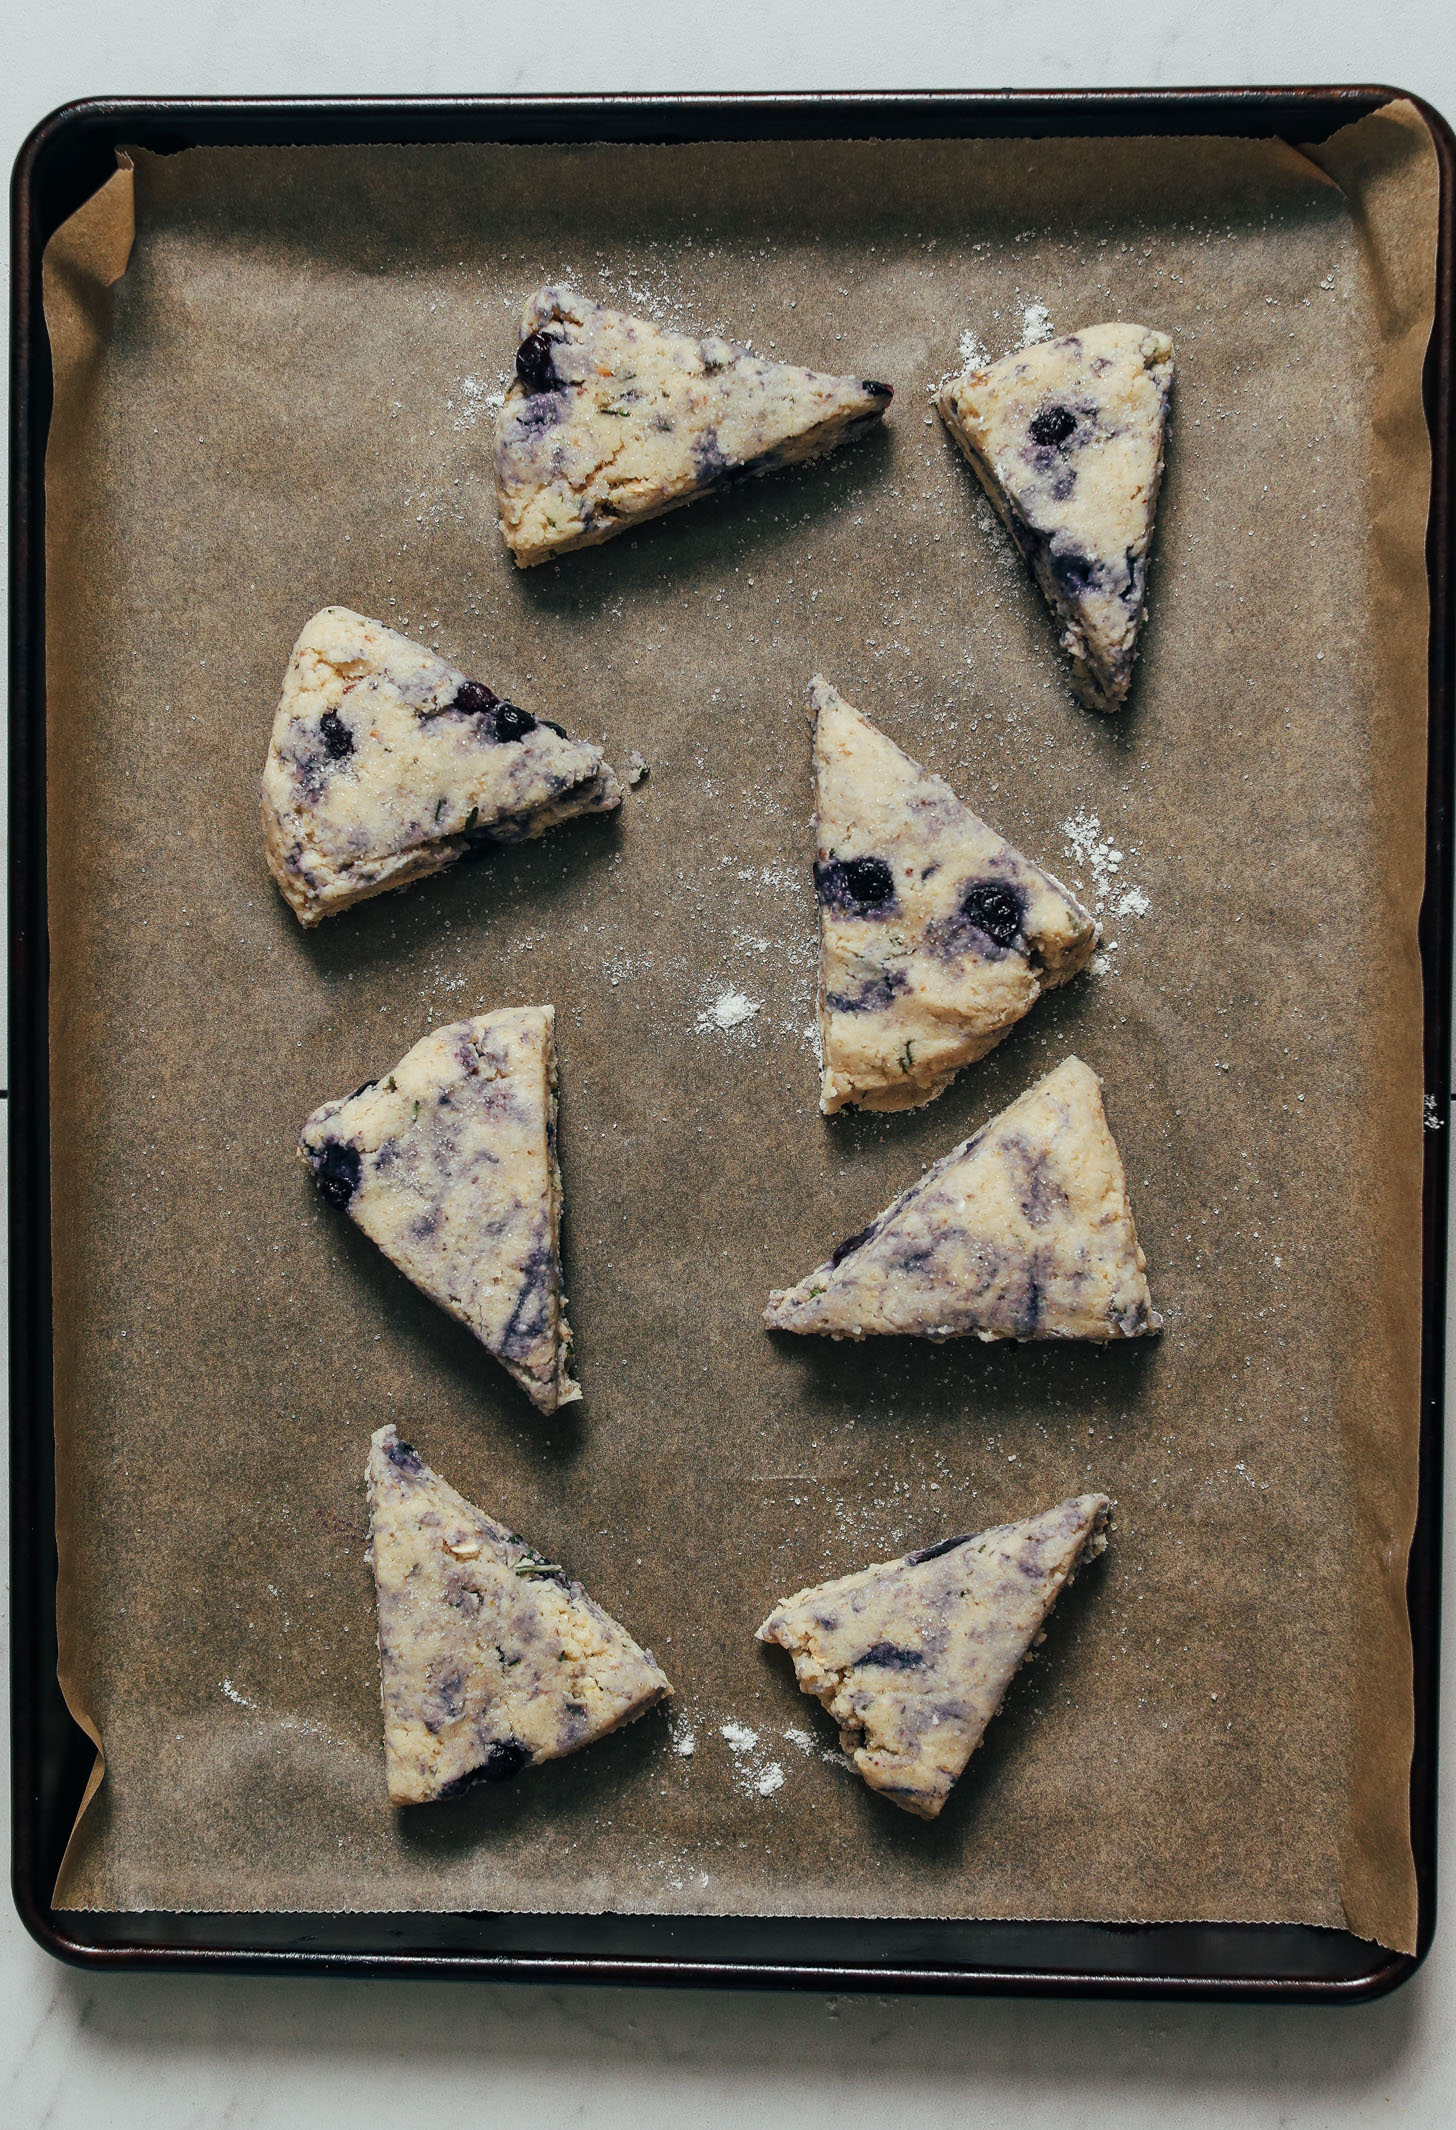 Baking sheet of unbaked Blueberry Scones ready to go in the oven